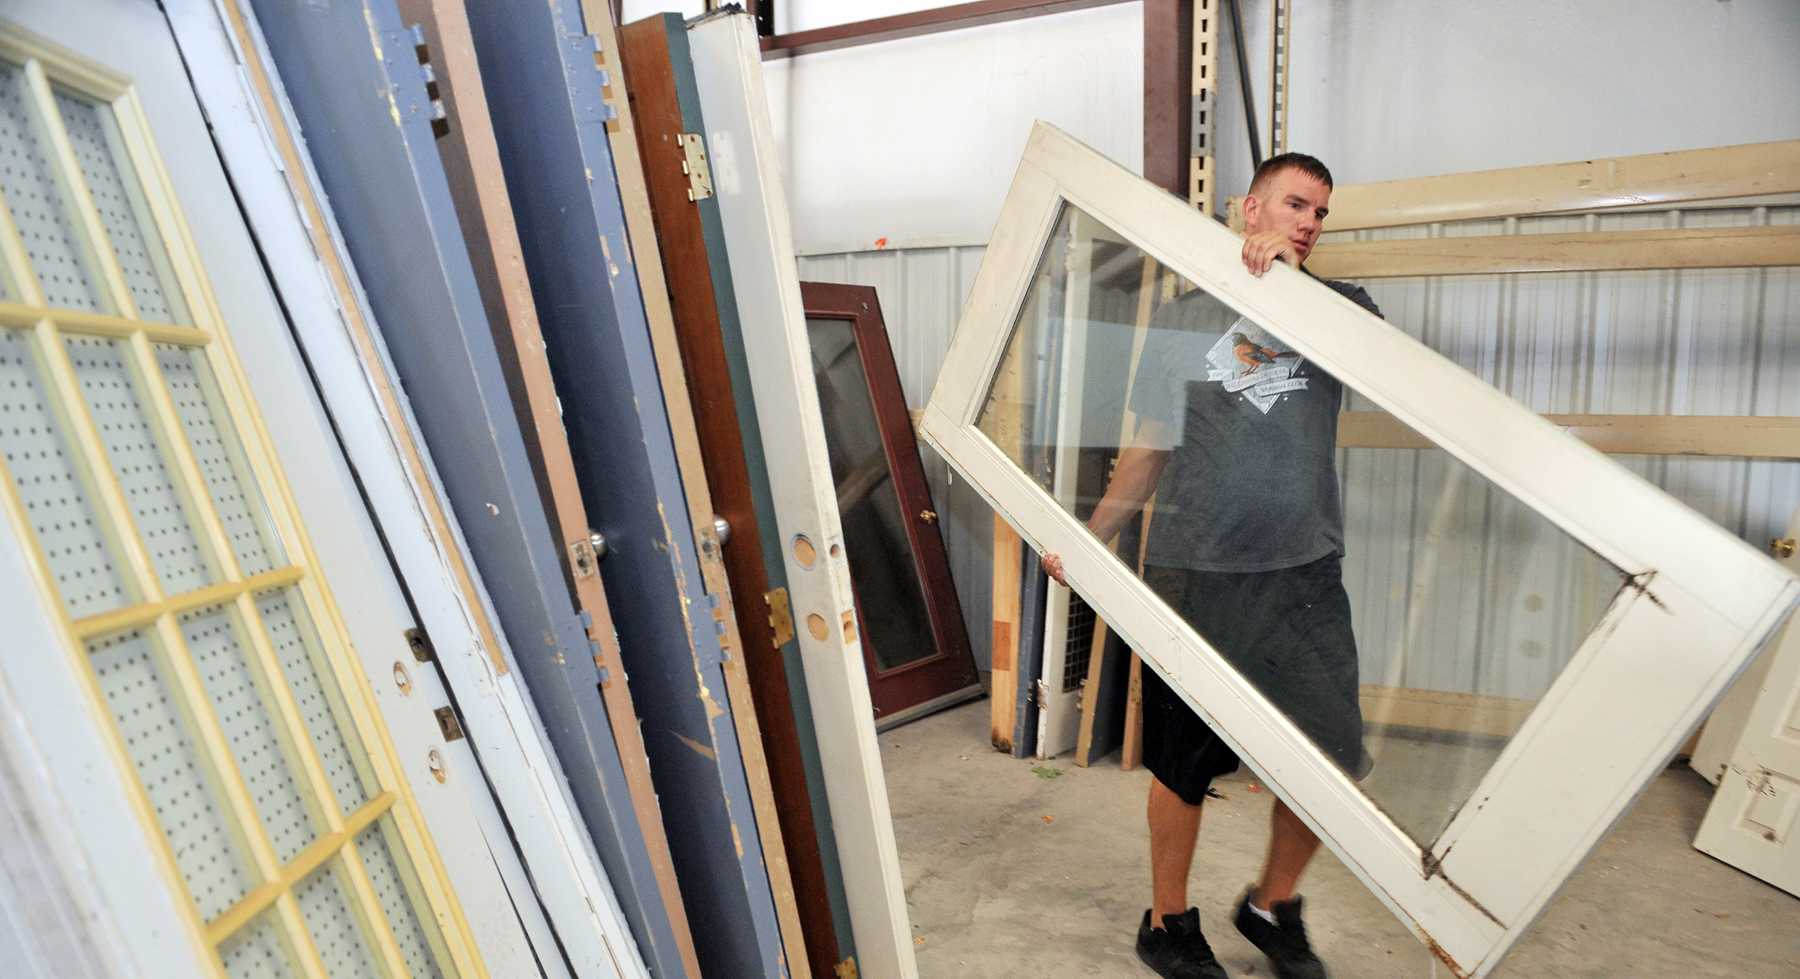 SHAW AIR FORCE BASE, S.C. -- Senior Airman Jason Albrecht, 20th Security Forces military working dog handler, organizes donated doors at the Sumter Habitat for Humanity ReStore, July 27. Proceeds from ReStore sales go into the Sumter Habitat for Humanity building fund. Habitat for Humanity is a non-profit organization that utilizes volunteer labor and donations of money and materials to eliminate poverty housing and homelessness. (U.S. Air Force photo/Senior Airman Kathrine McDowell)